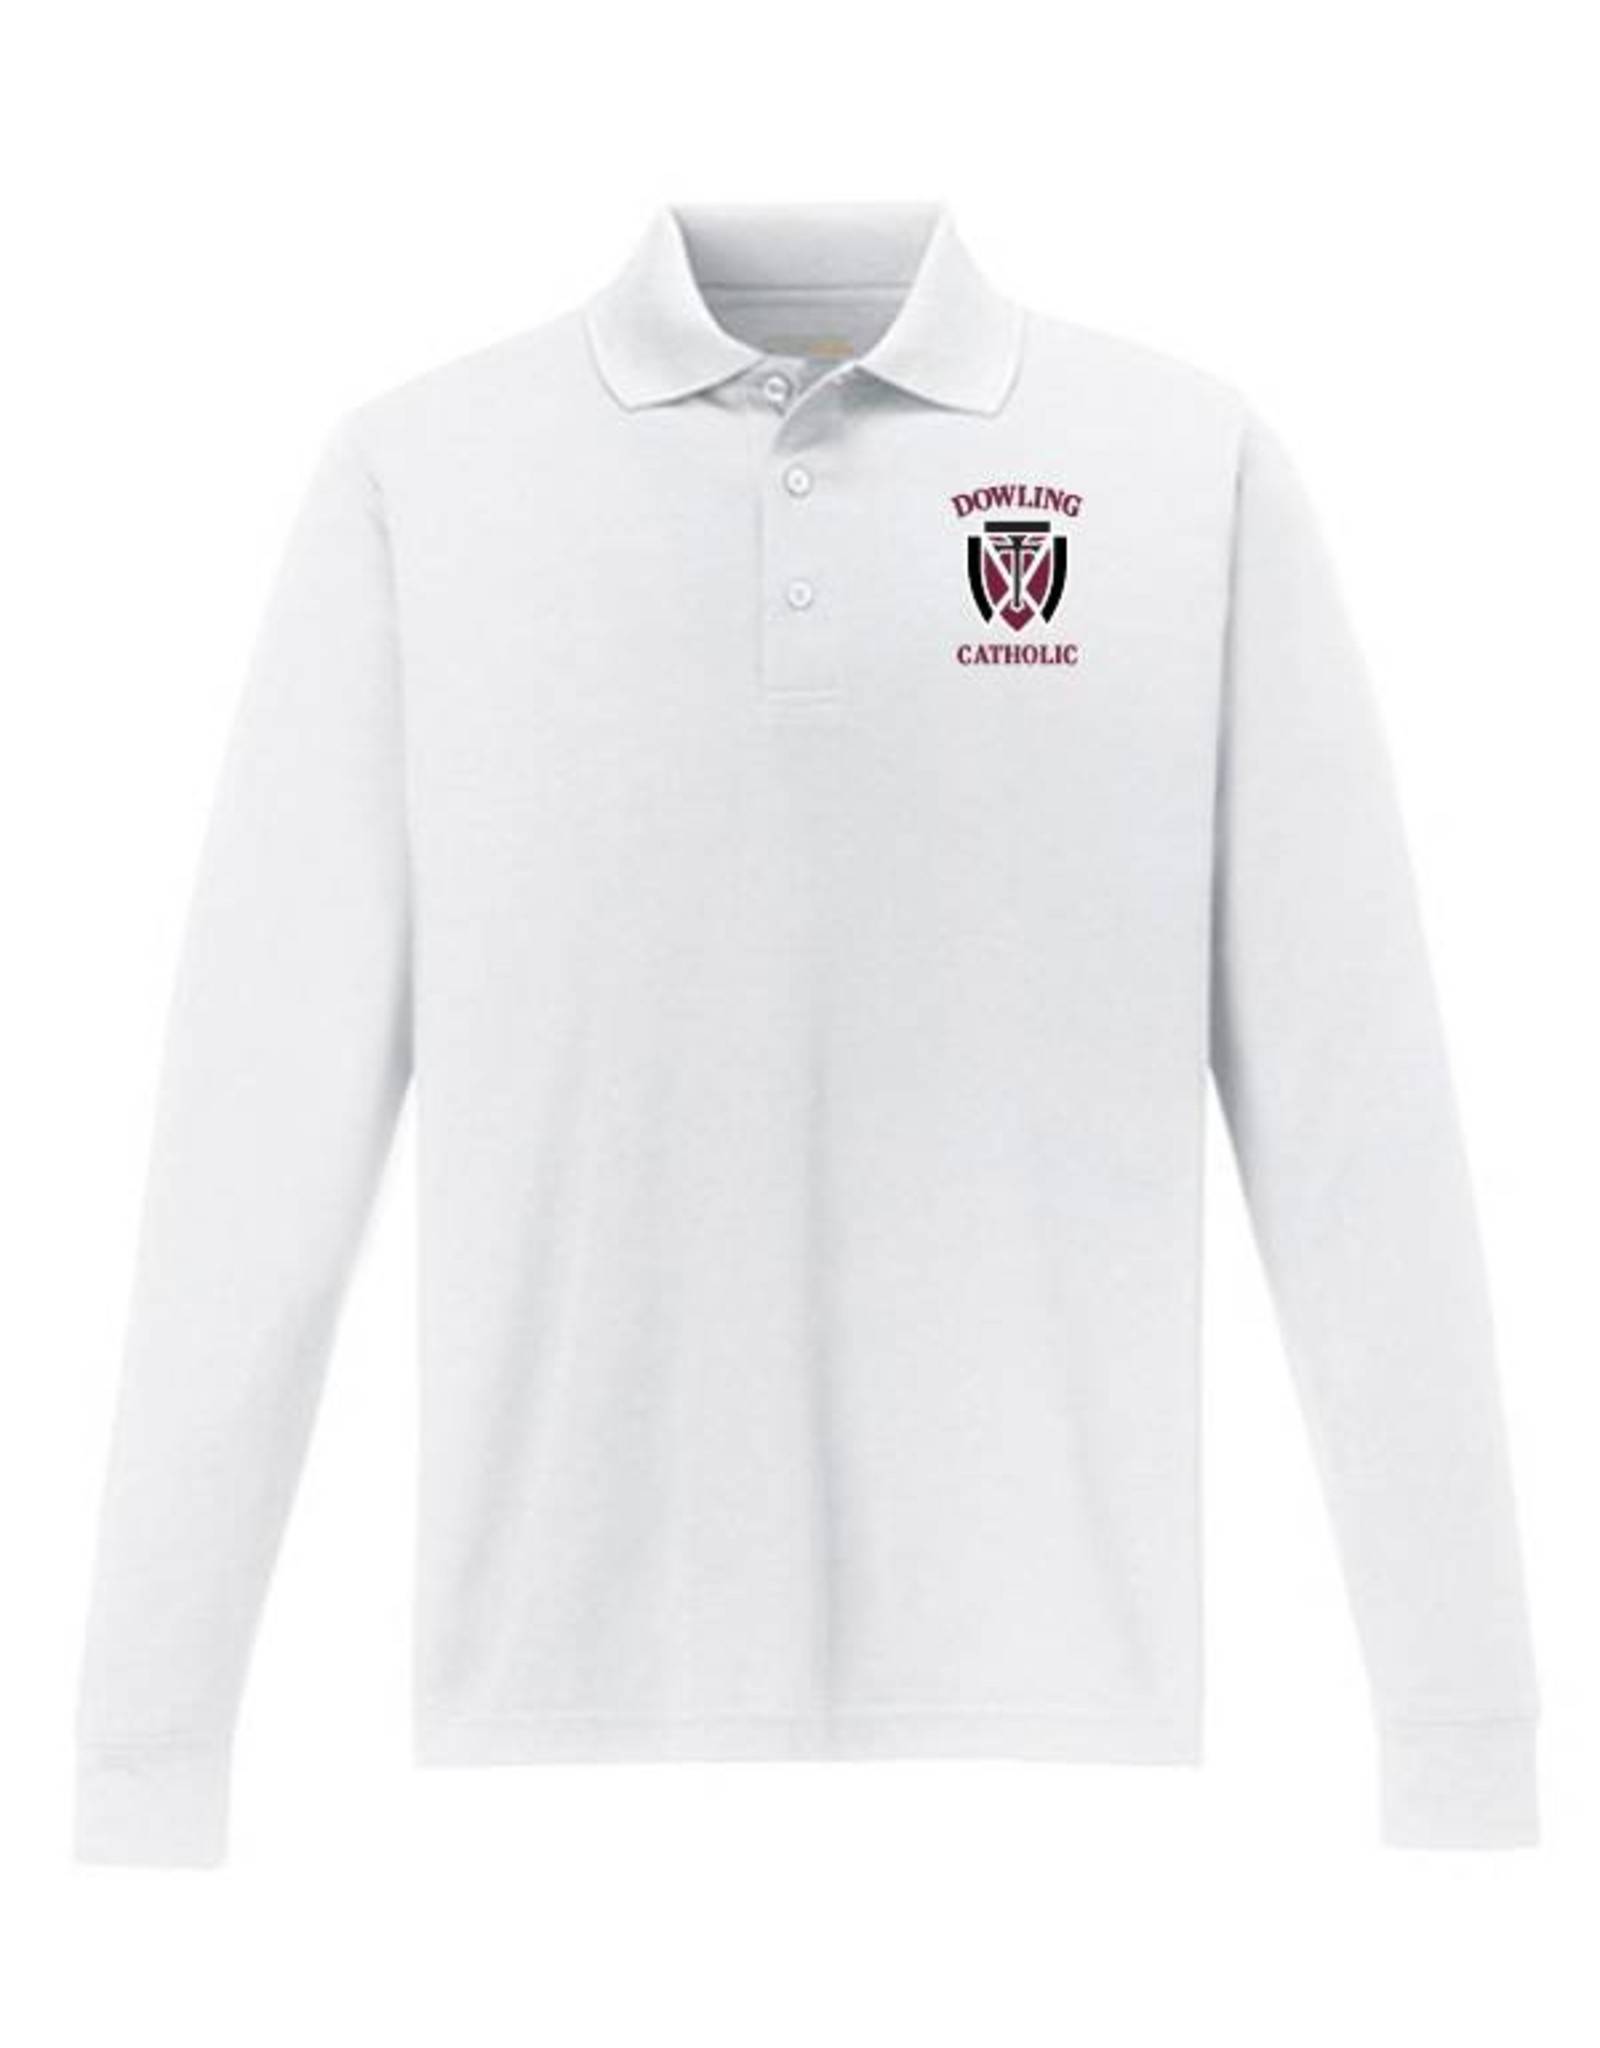 Core Men's Long Sleeve Performance Polo - ONLINE